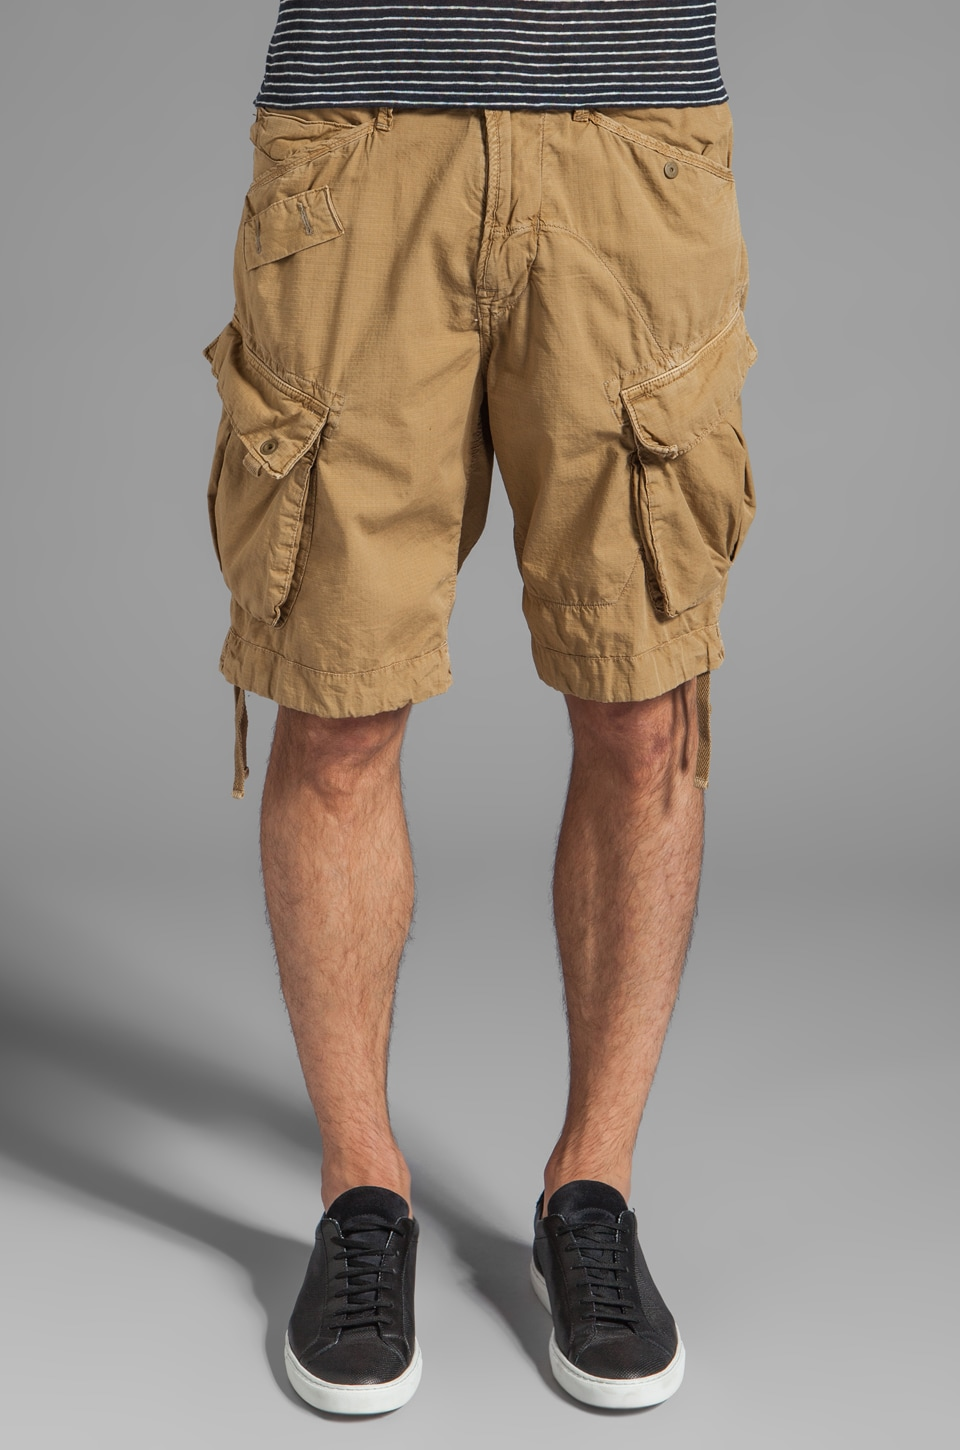 G-Star Rovic Loose Cargo Short in Dark Fall